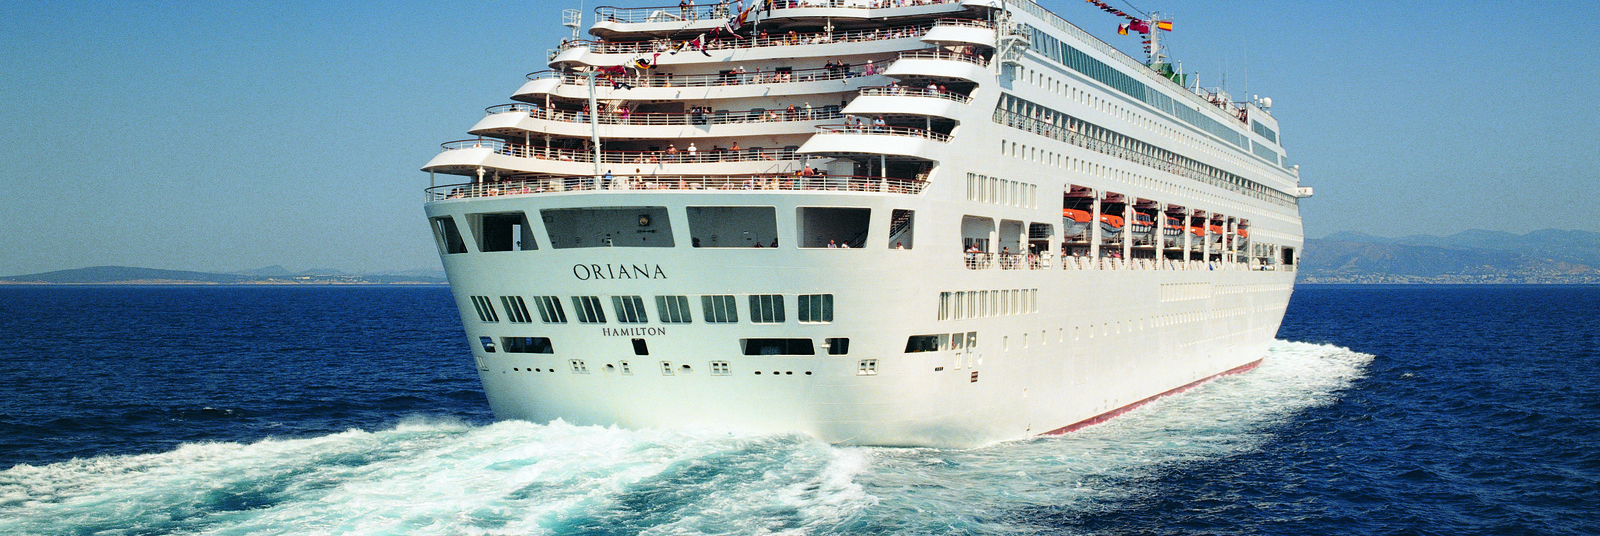 Homepage_large_oriana_external_4